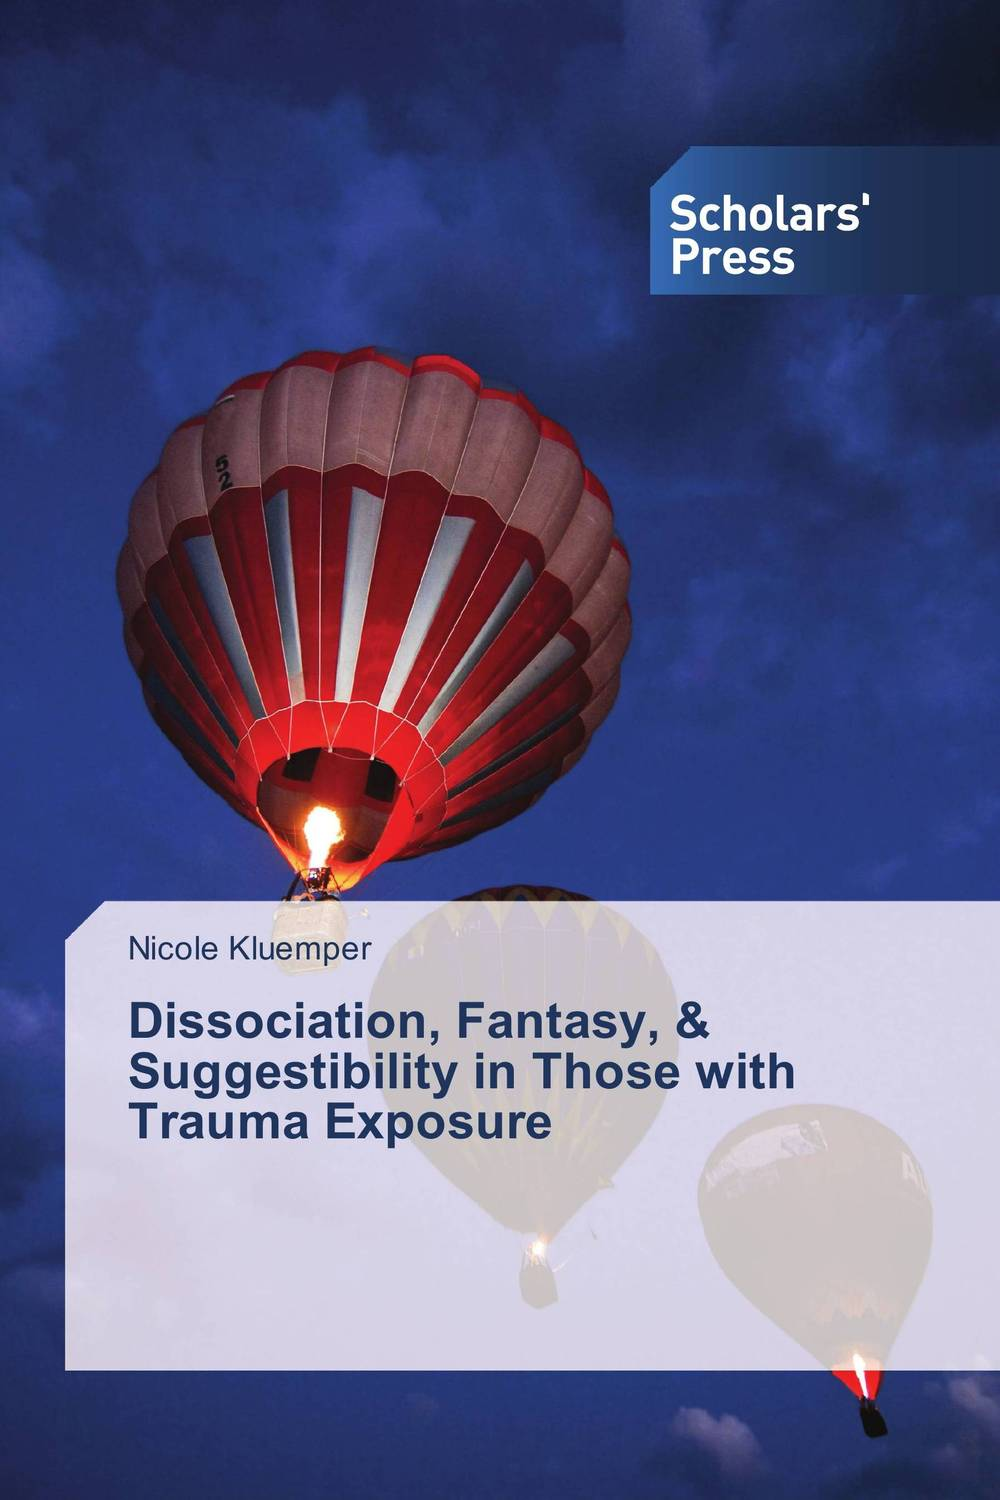 Dissociation, Fantasy, & Suggestibility in Those with Trauma Exposure dissociation fantasy